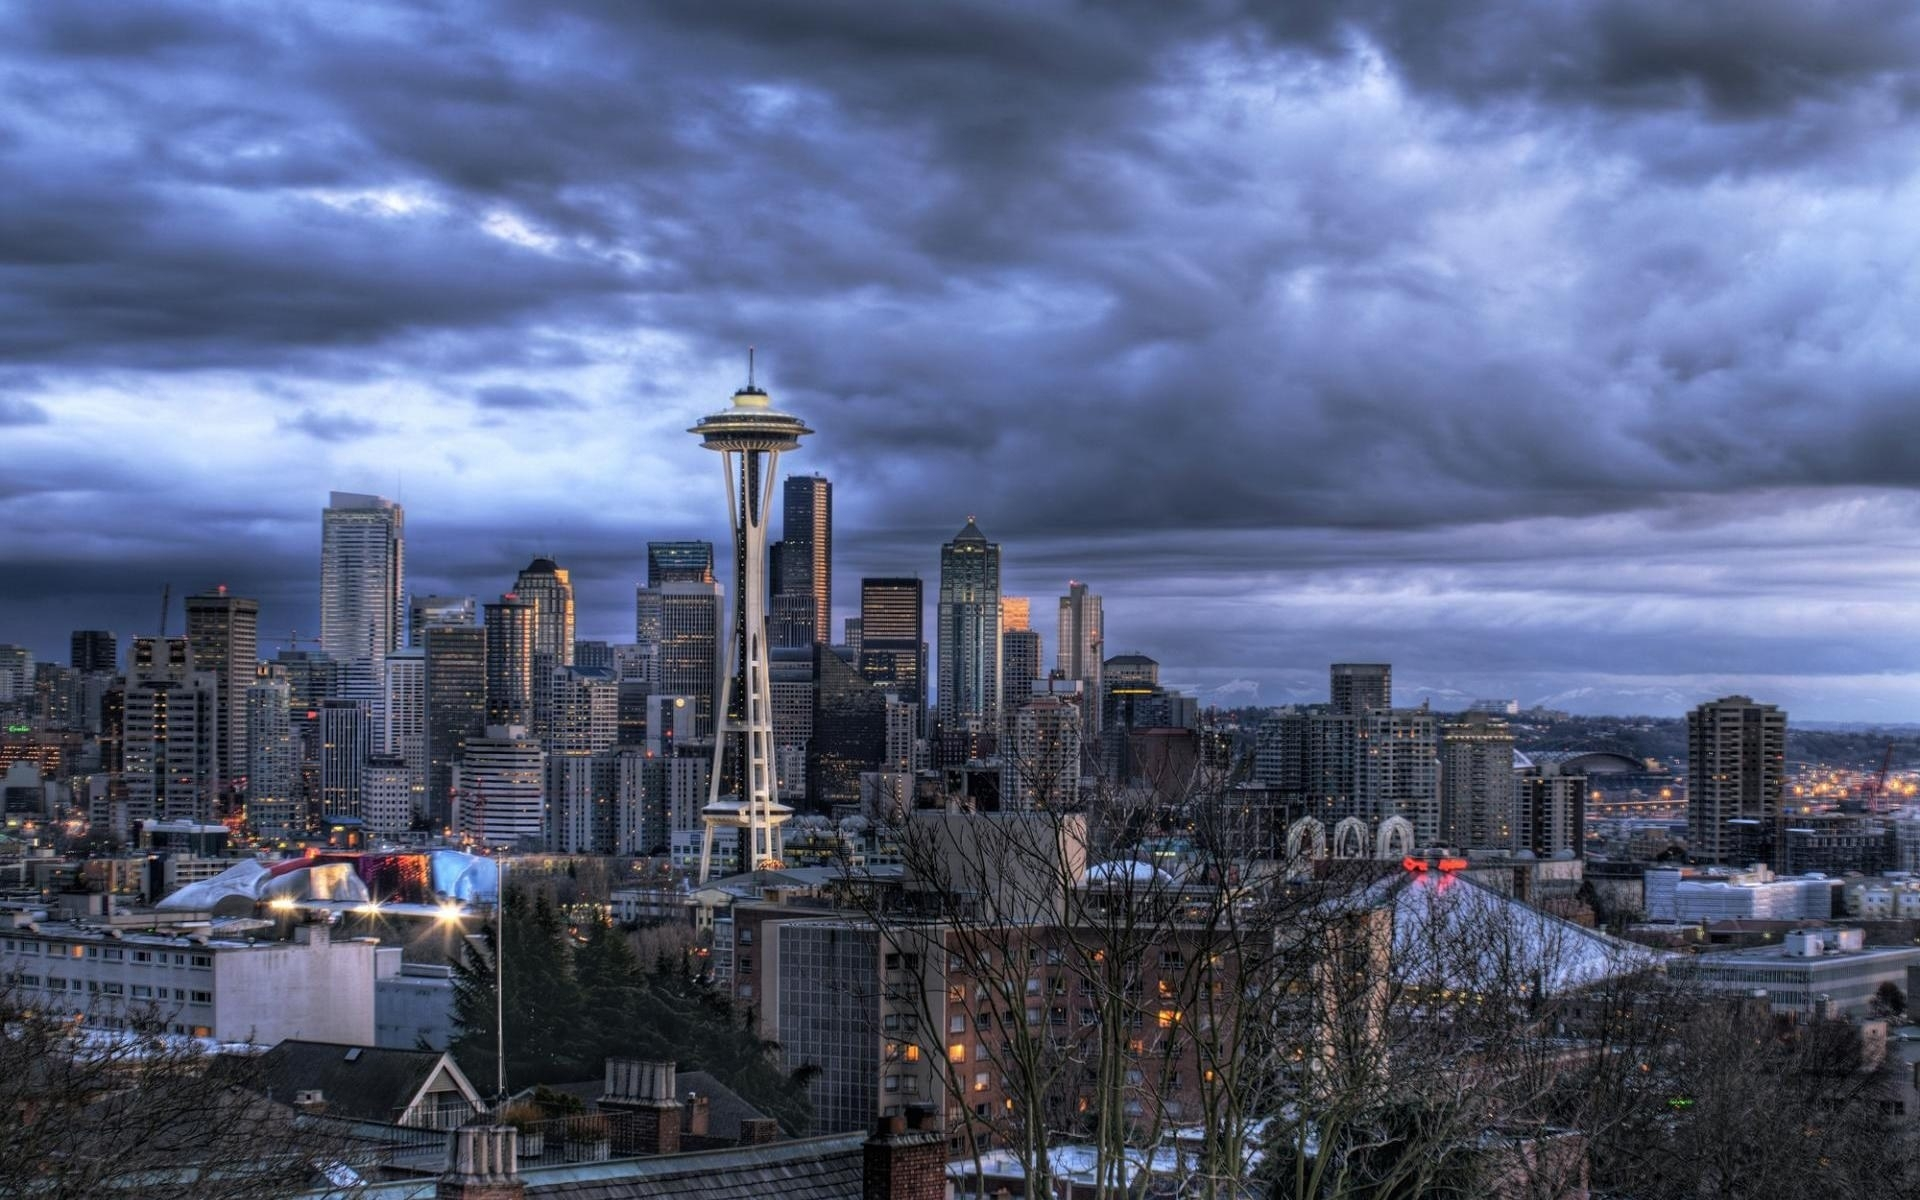 best seattle wallpapers in high quality, seattle backgrounds